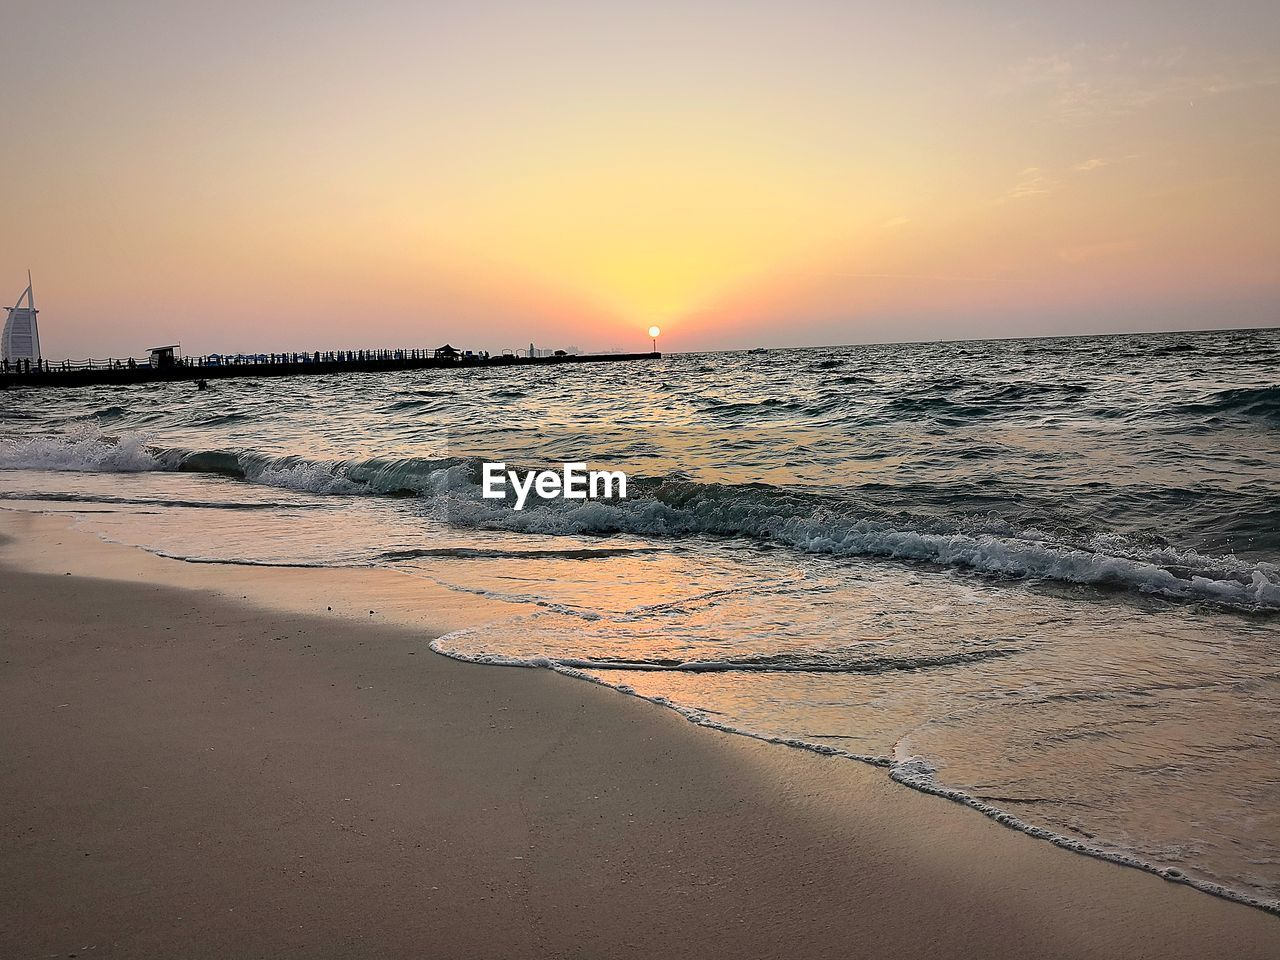 sunset, sea, beach, water, beauty in nature, scenics, nature, tranquil scene, tranquility, sand, horizon over water, shore, orange color, sky, sun, wave, idyllic, outdoors, no people, travel destinations, vacations, clear sky, day